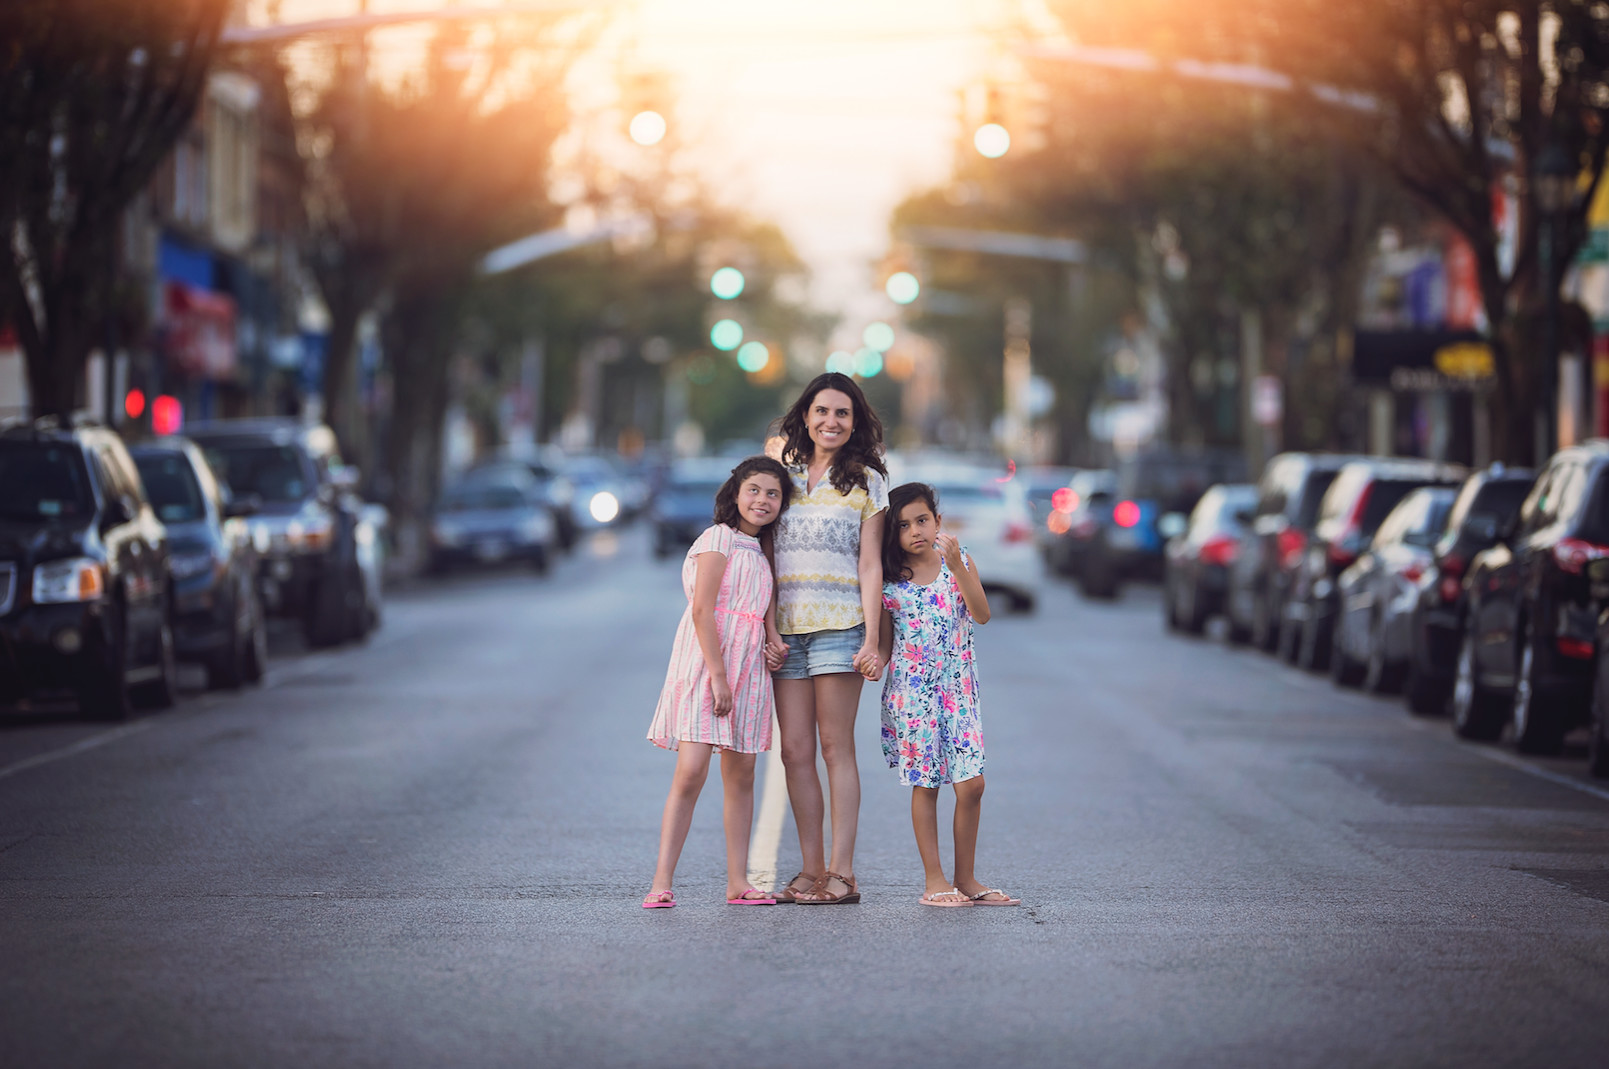 Barrera's sister, Cristina, center, with her two daughters, Gulianna, 12, left, and Rafaela, 10, on Rockaway Avenue in Valley Stream.